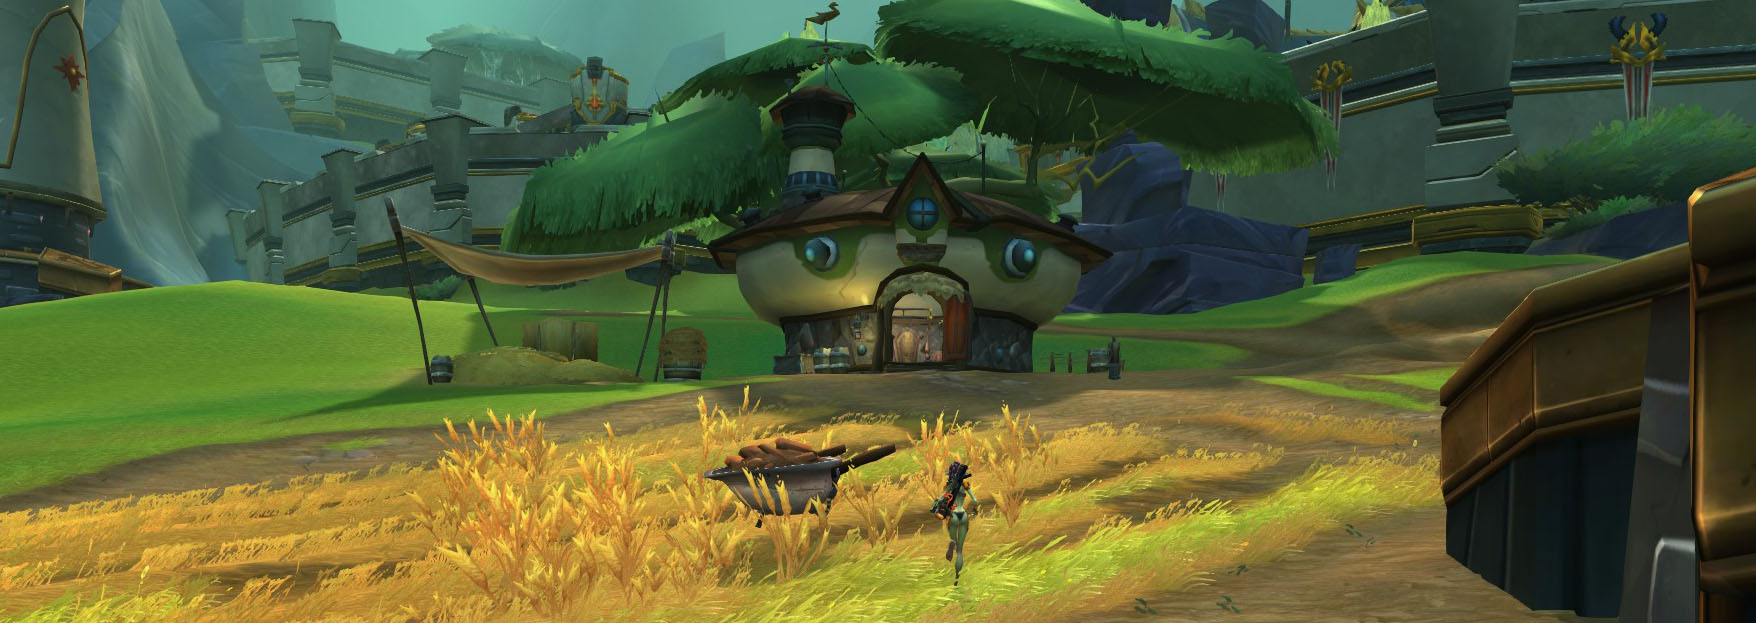 Wildstar Hycrest Insurrection